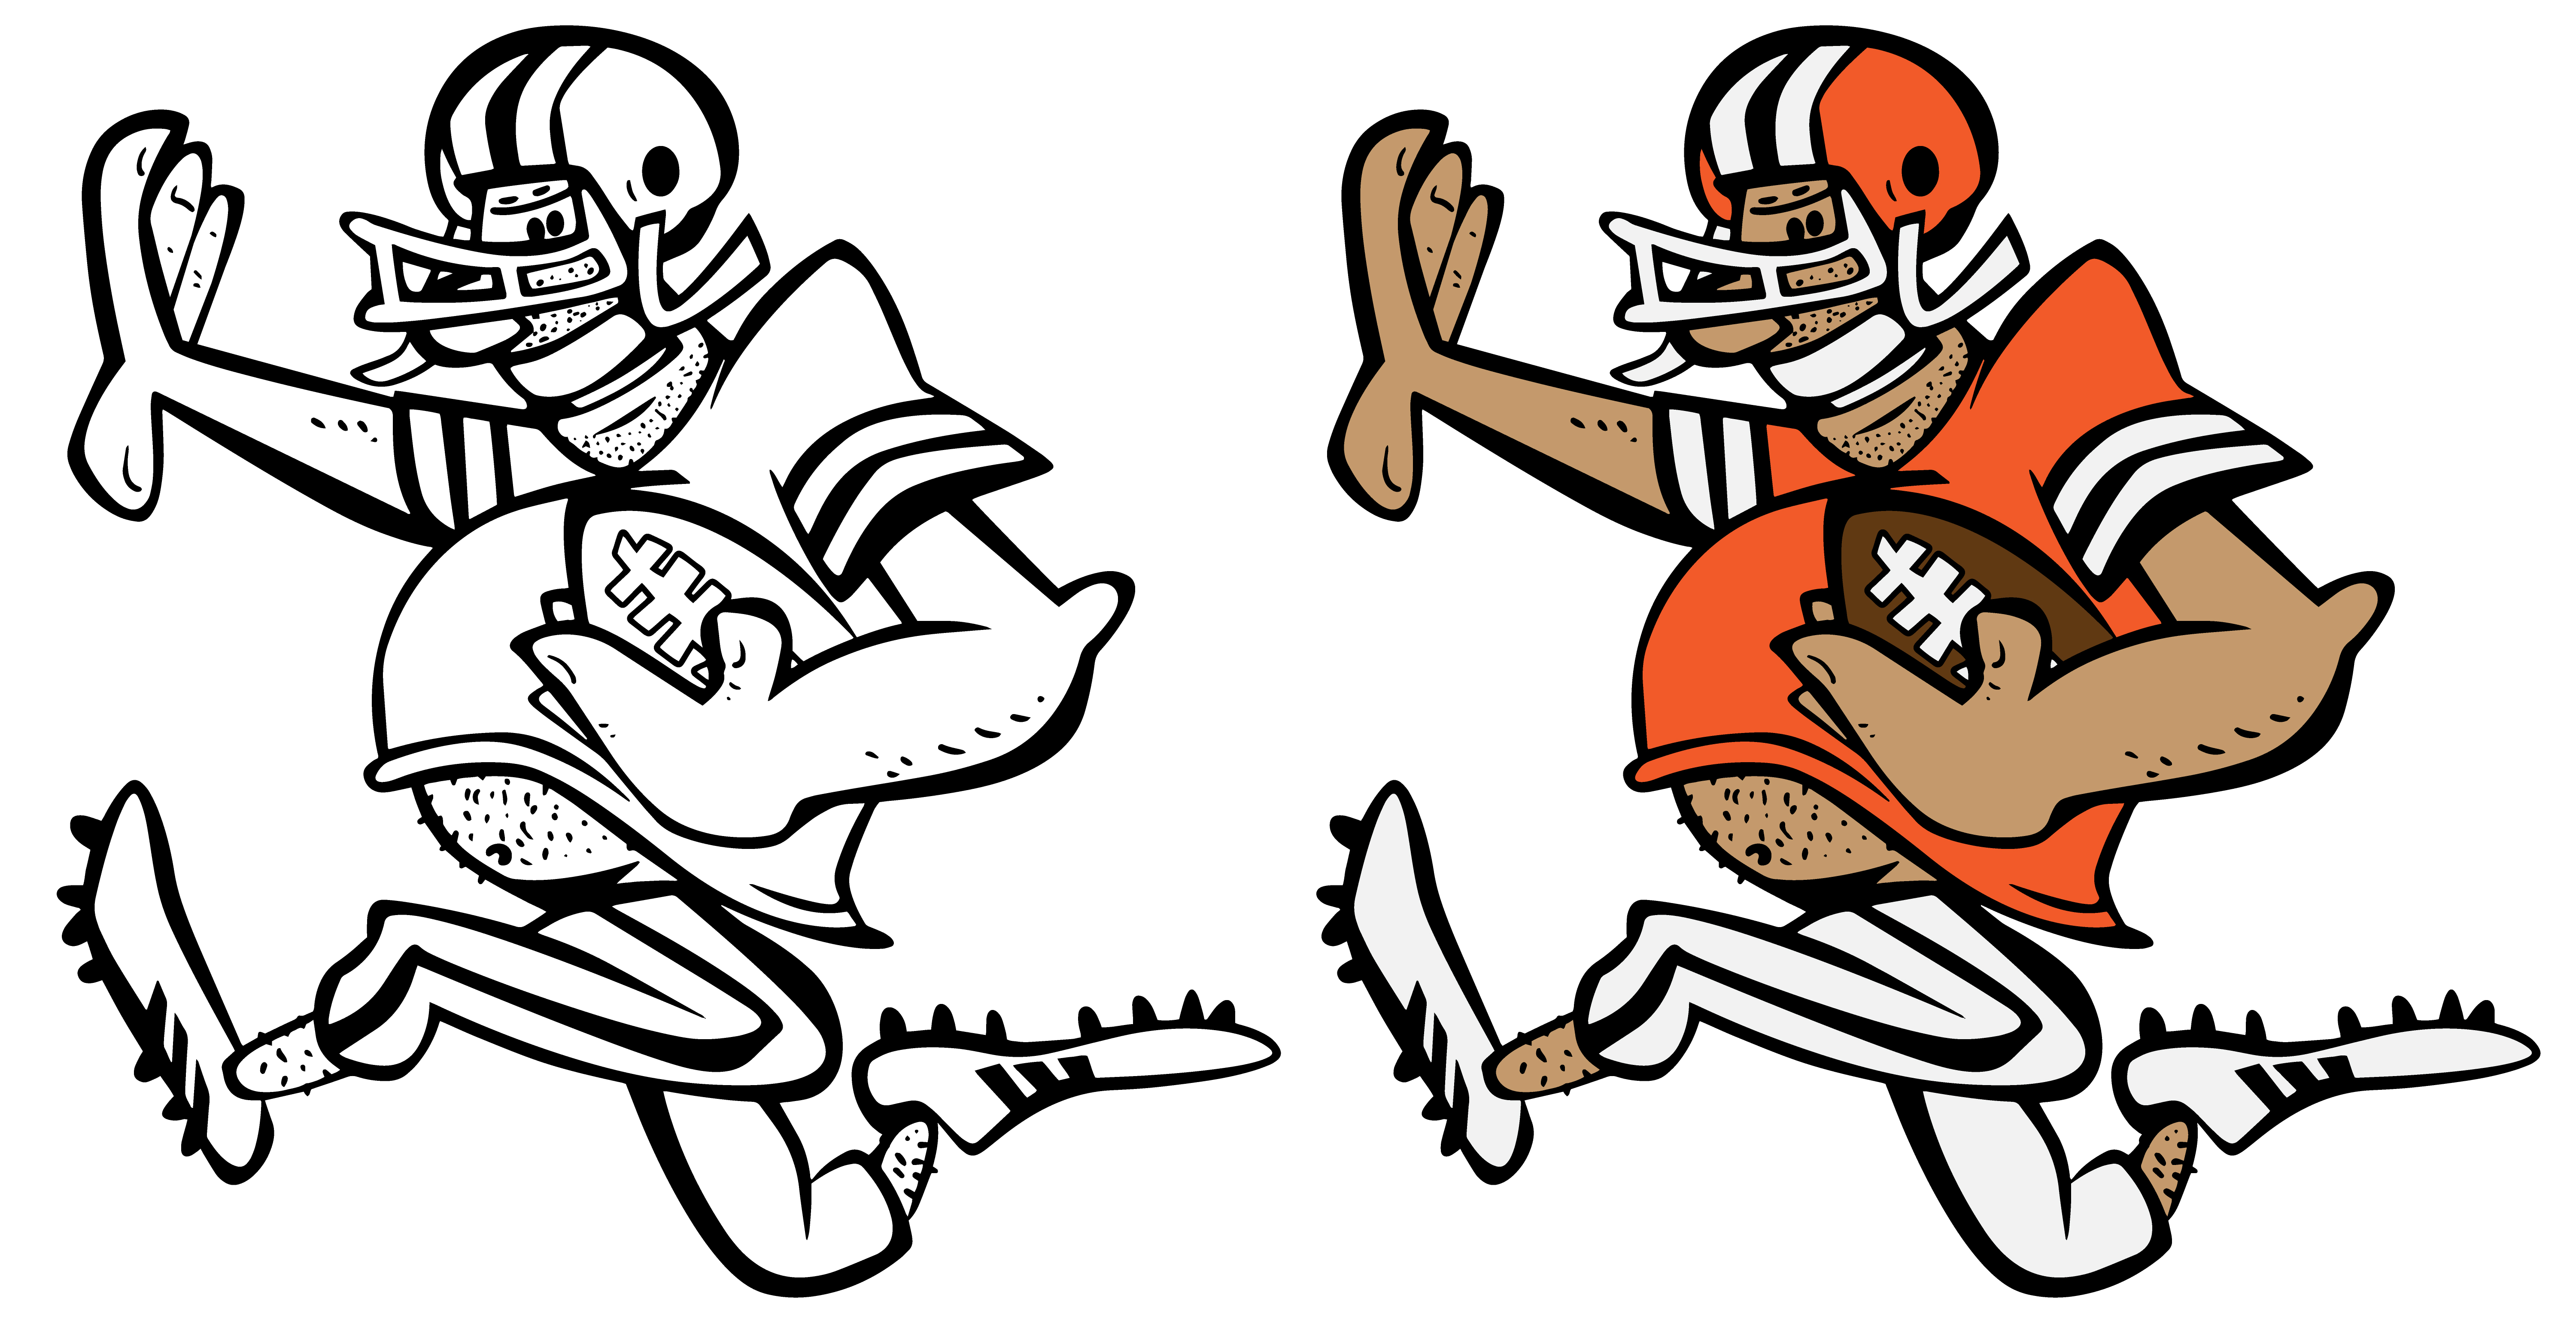 Funny Football Player Cartoon Vector Graphic Illustration.